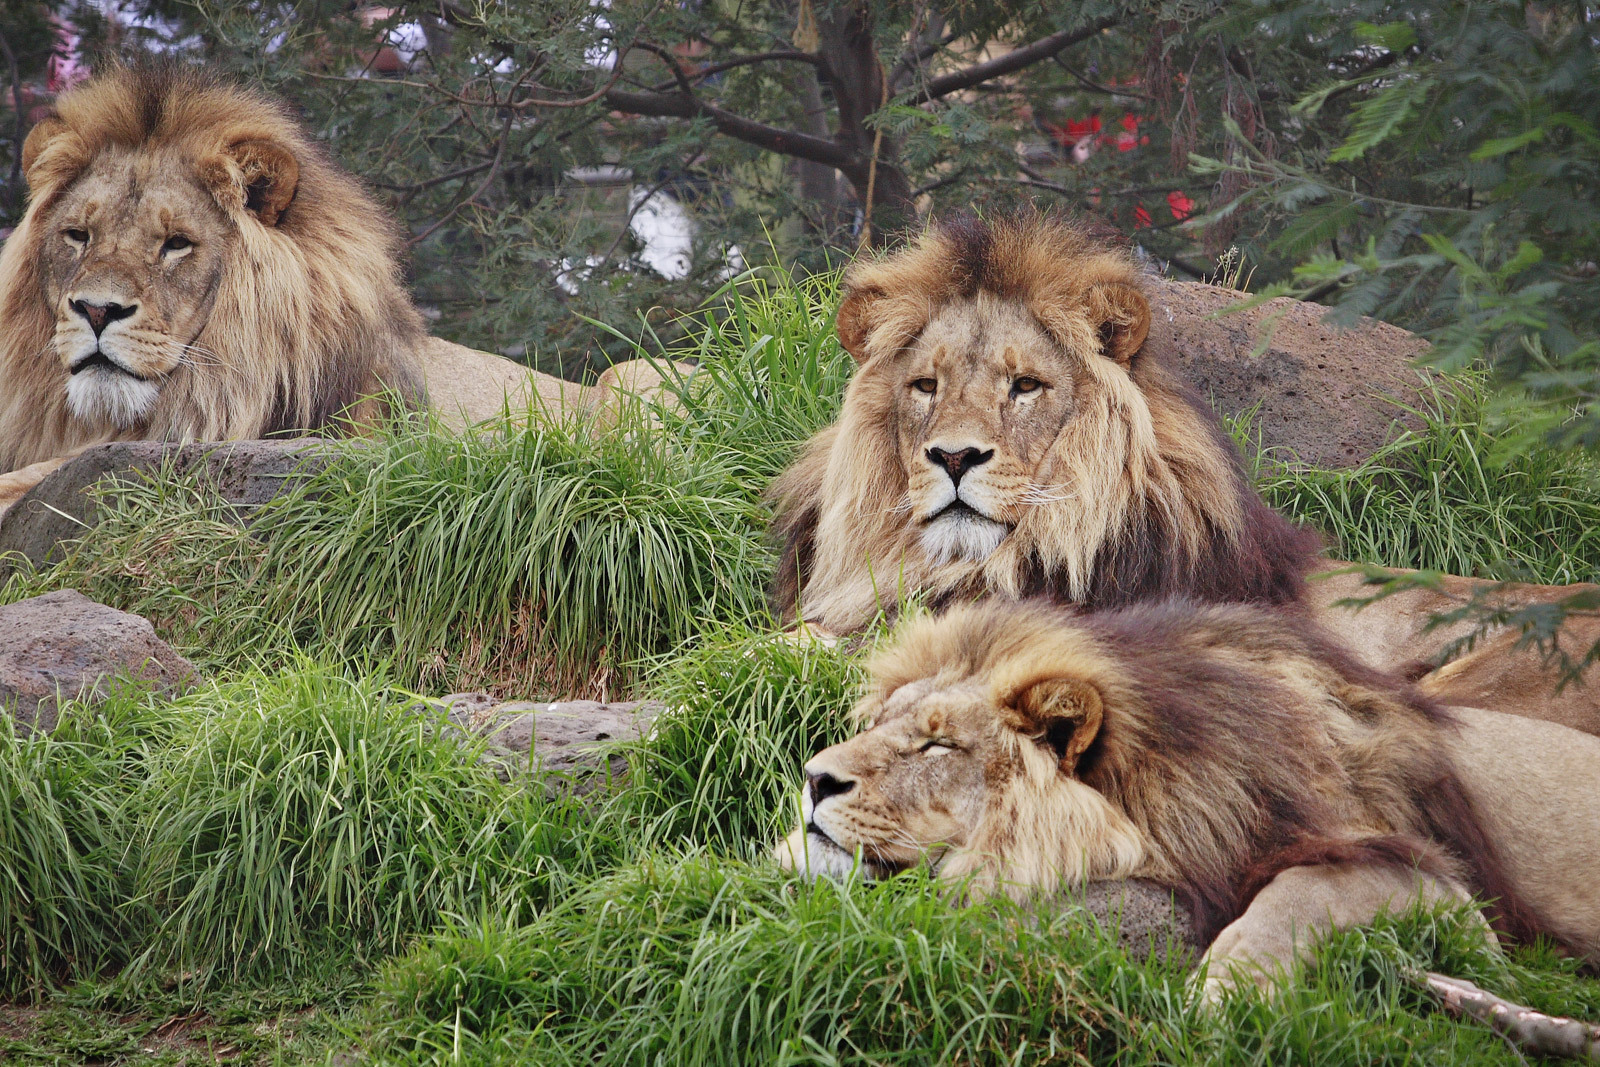 All About Animal Wildlife King Of Jungle Lion Wallpapers Hd 2012